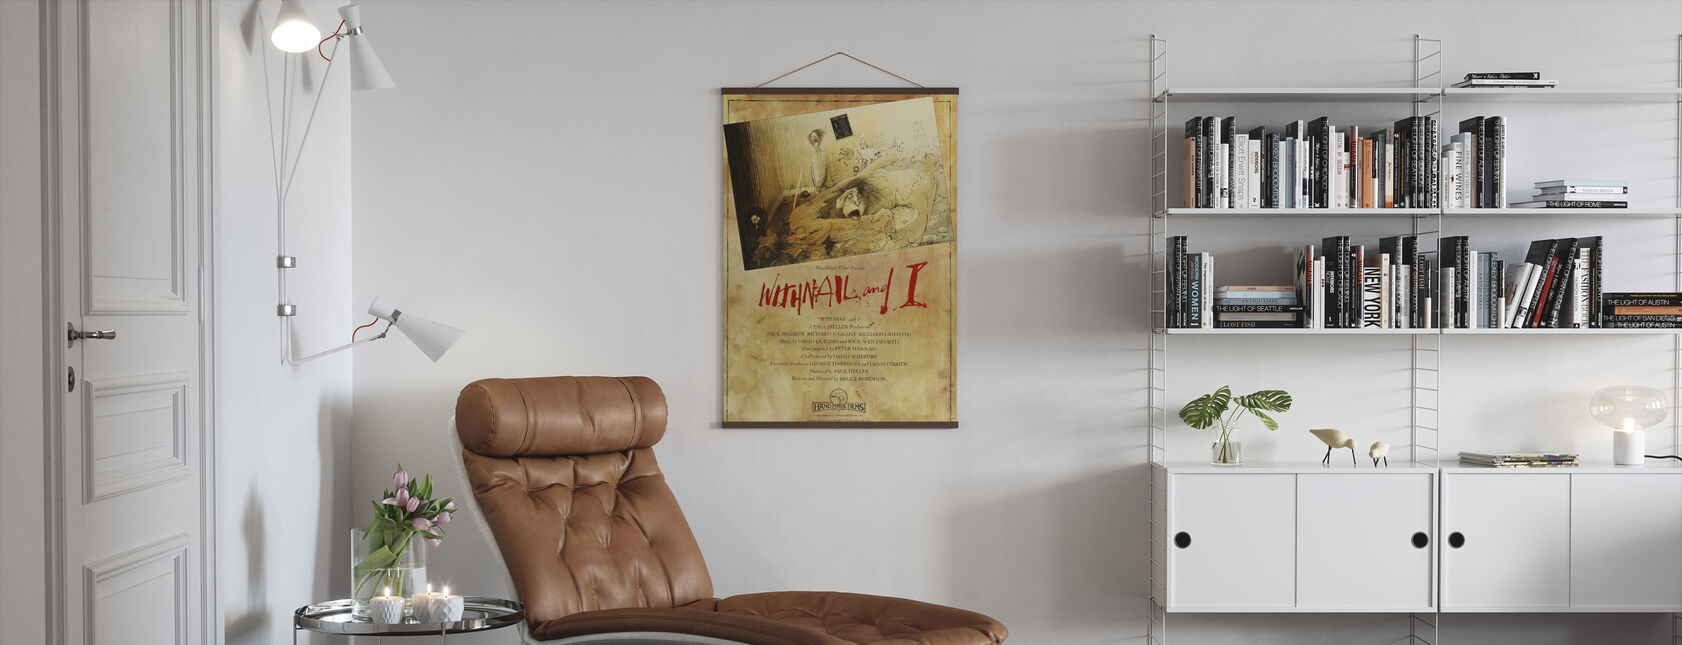 Withnail and I - Poster - Living Room